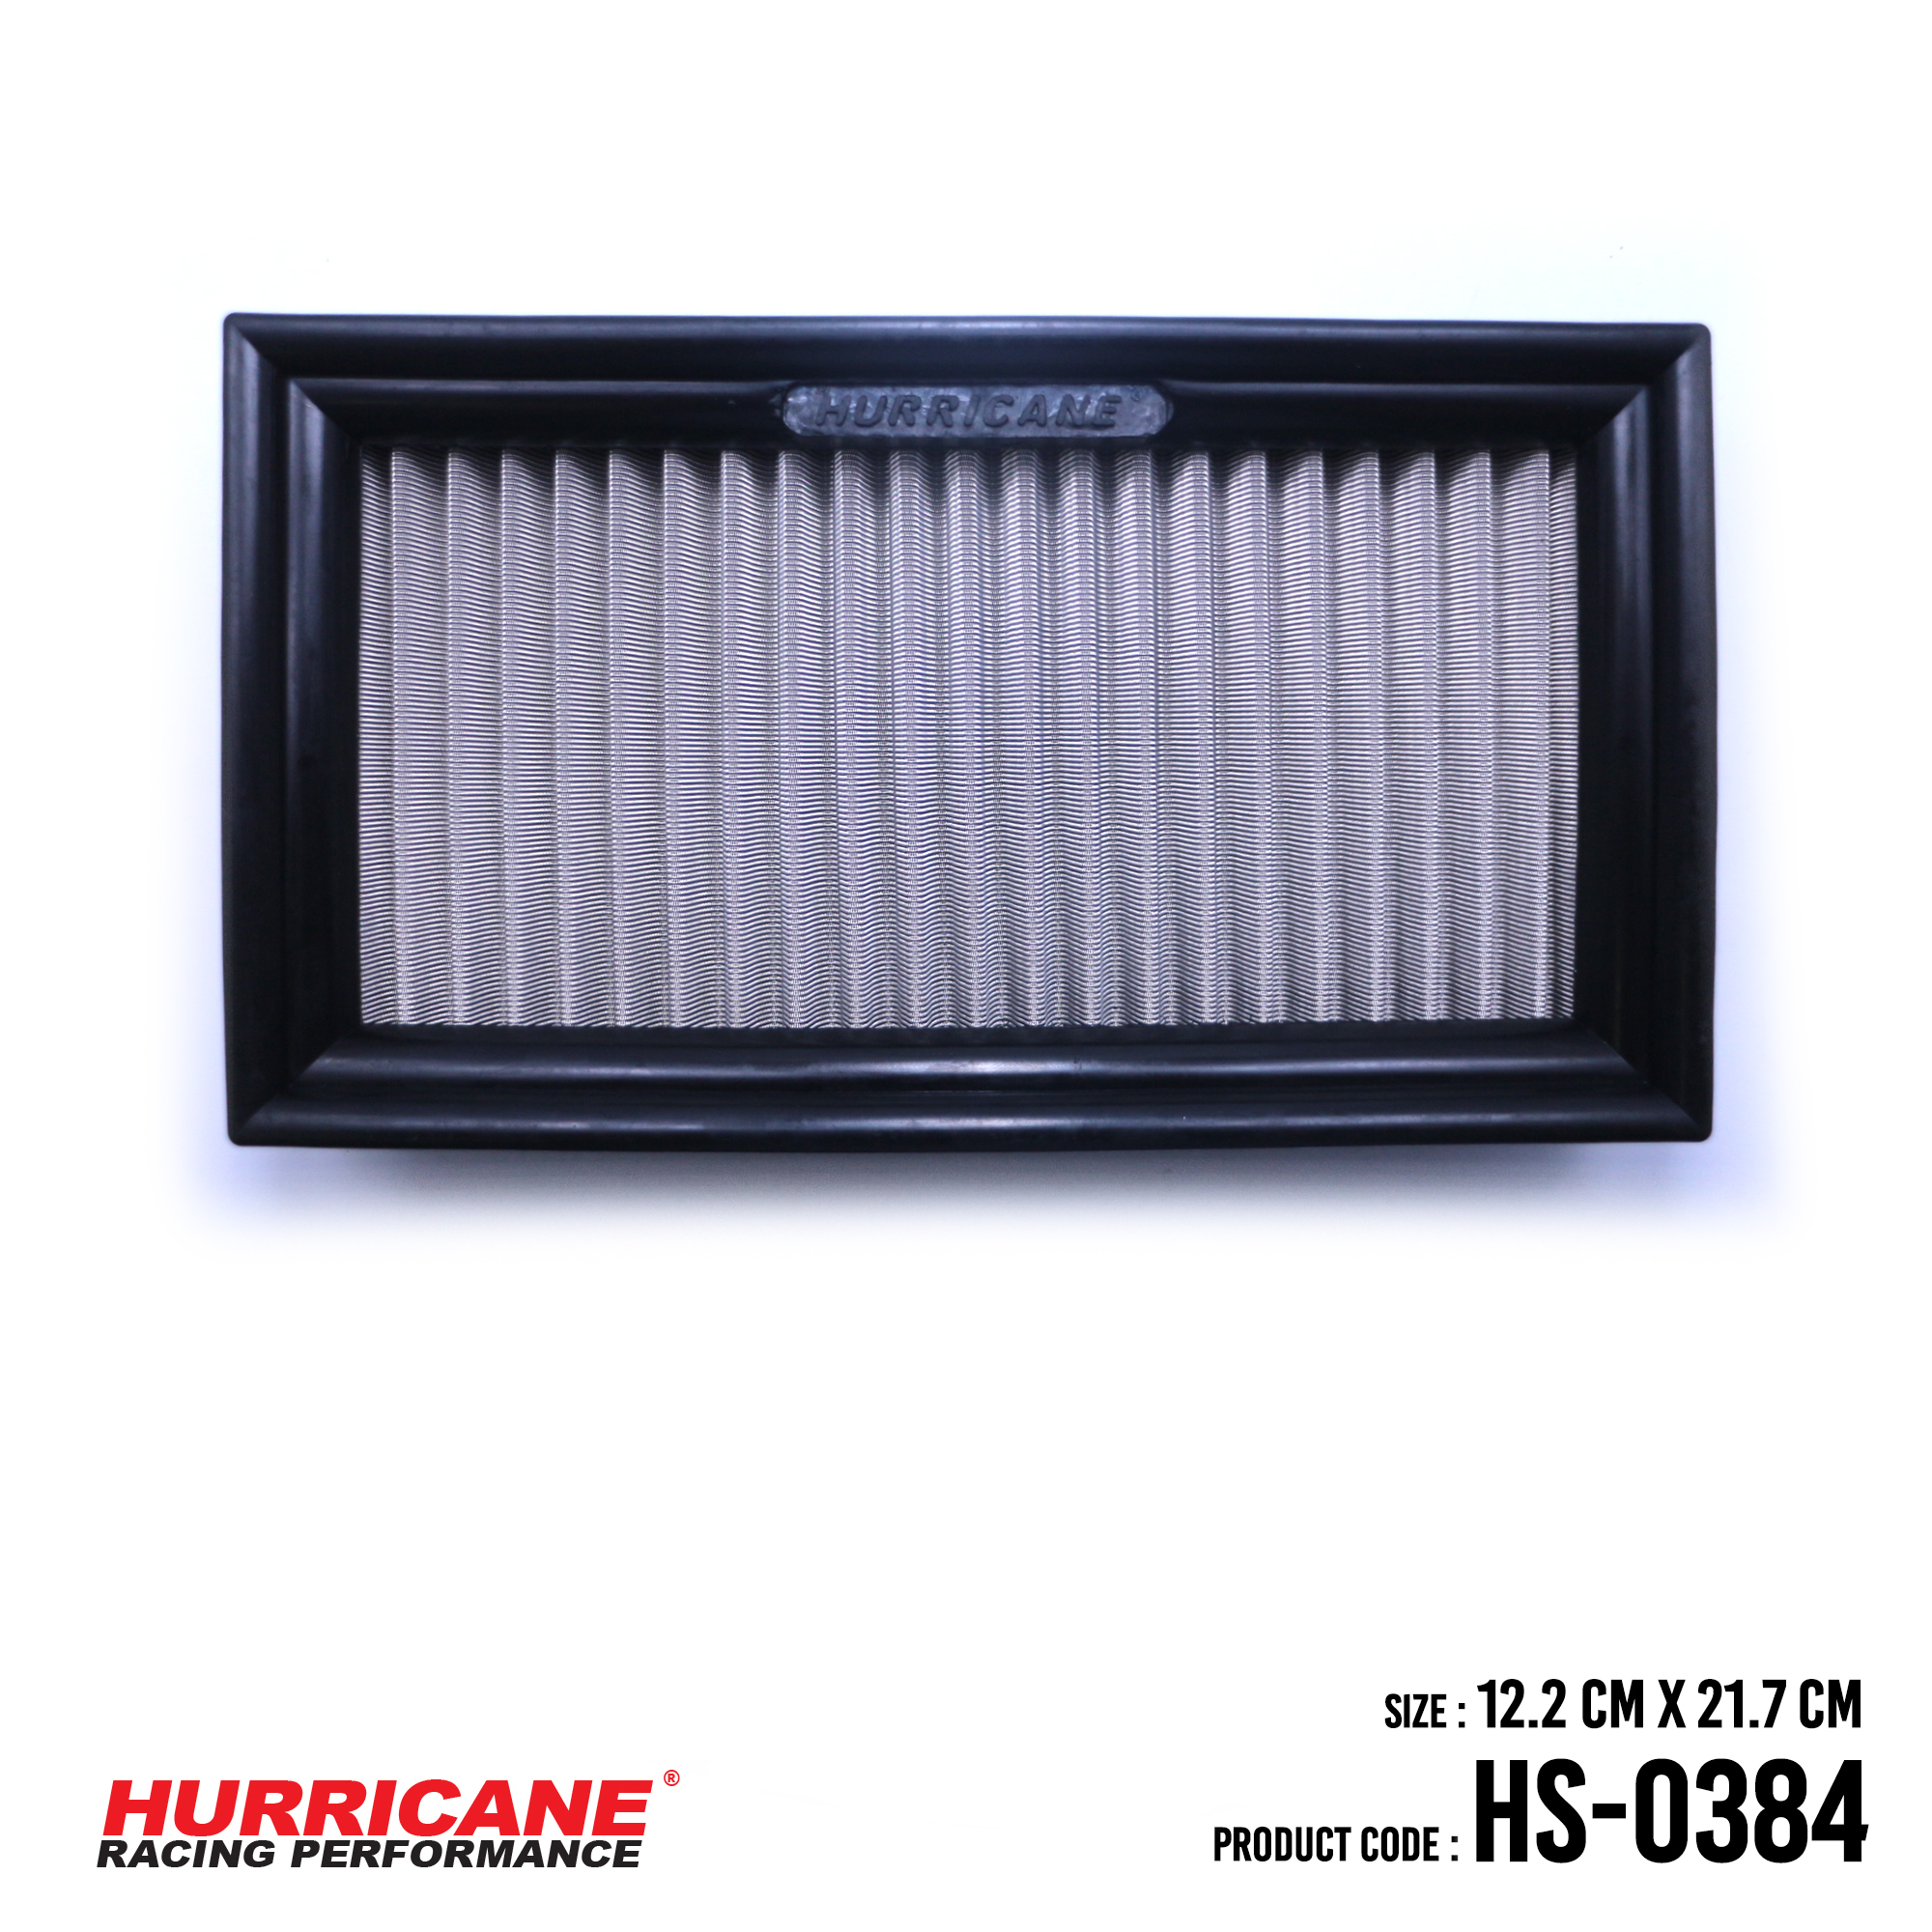 HURRICANE STAINLESS STEEL AIR FILTER FOR HS-0384 PeroduaToyota